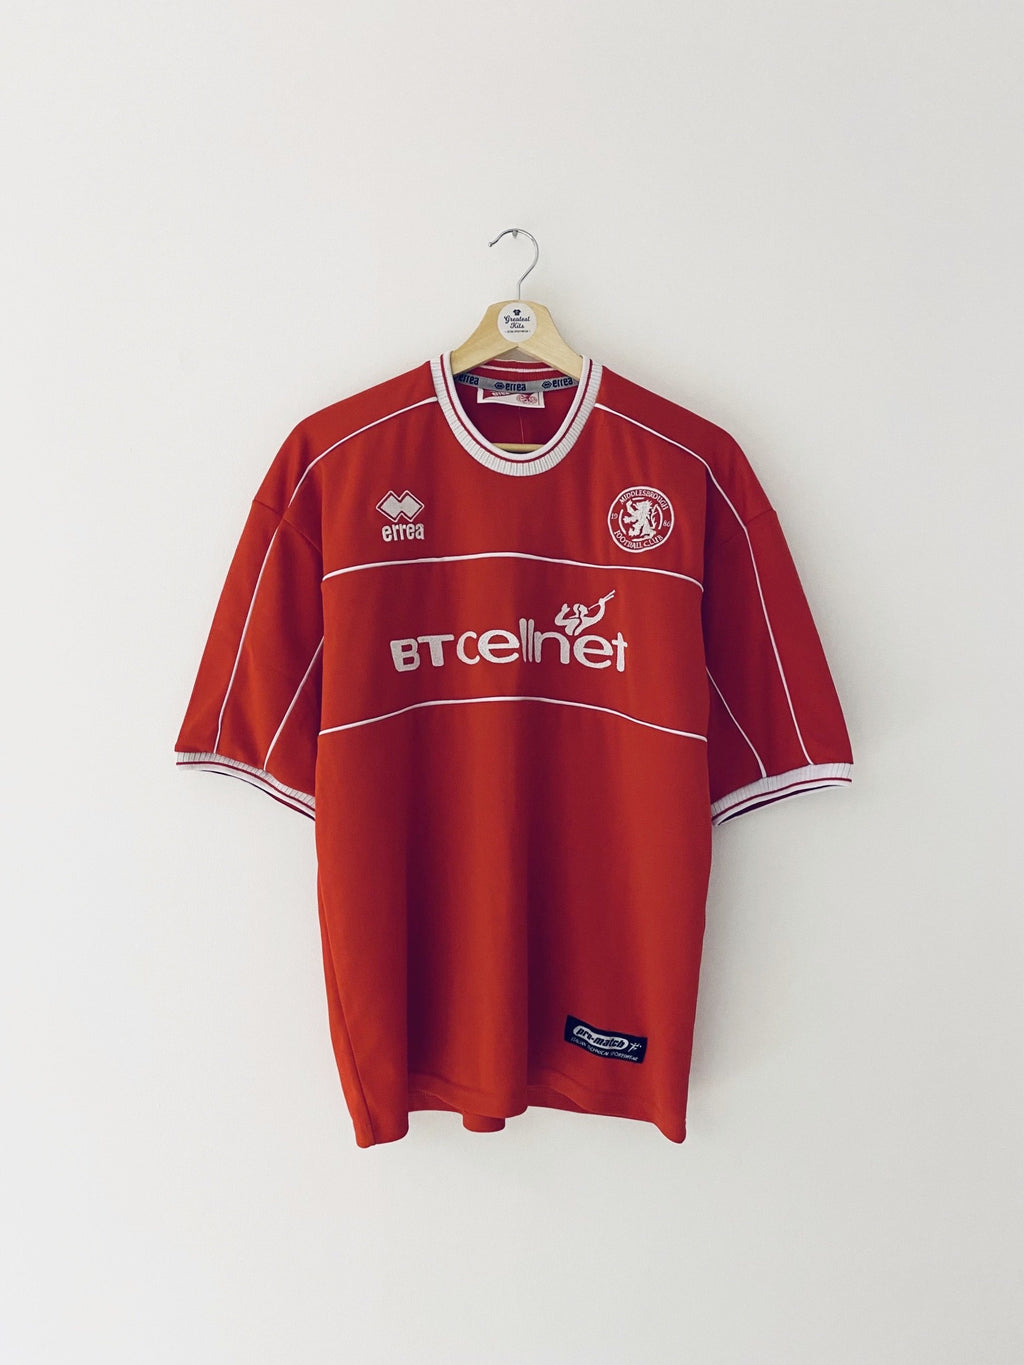 2001/02 Middlesbrough Home Shirt (M) 9.5/10